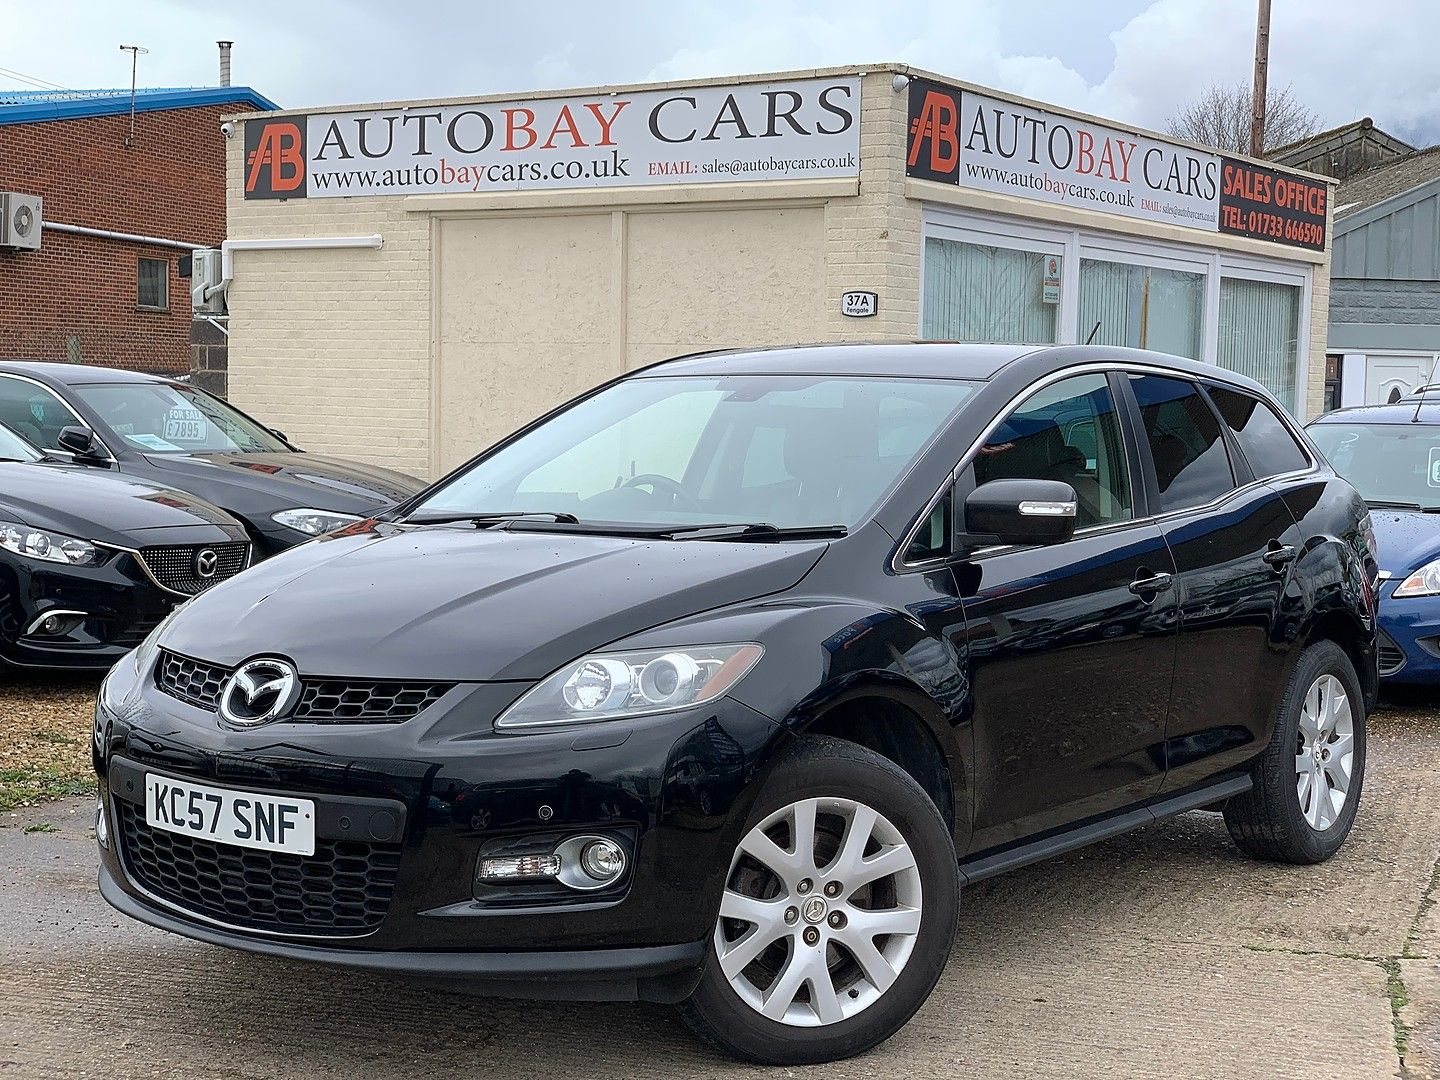 MAZDACX-72.3 Turbo for sale